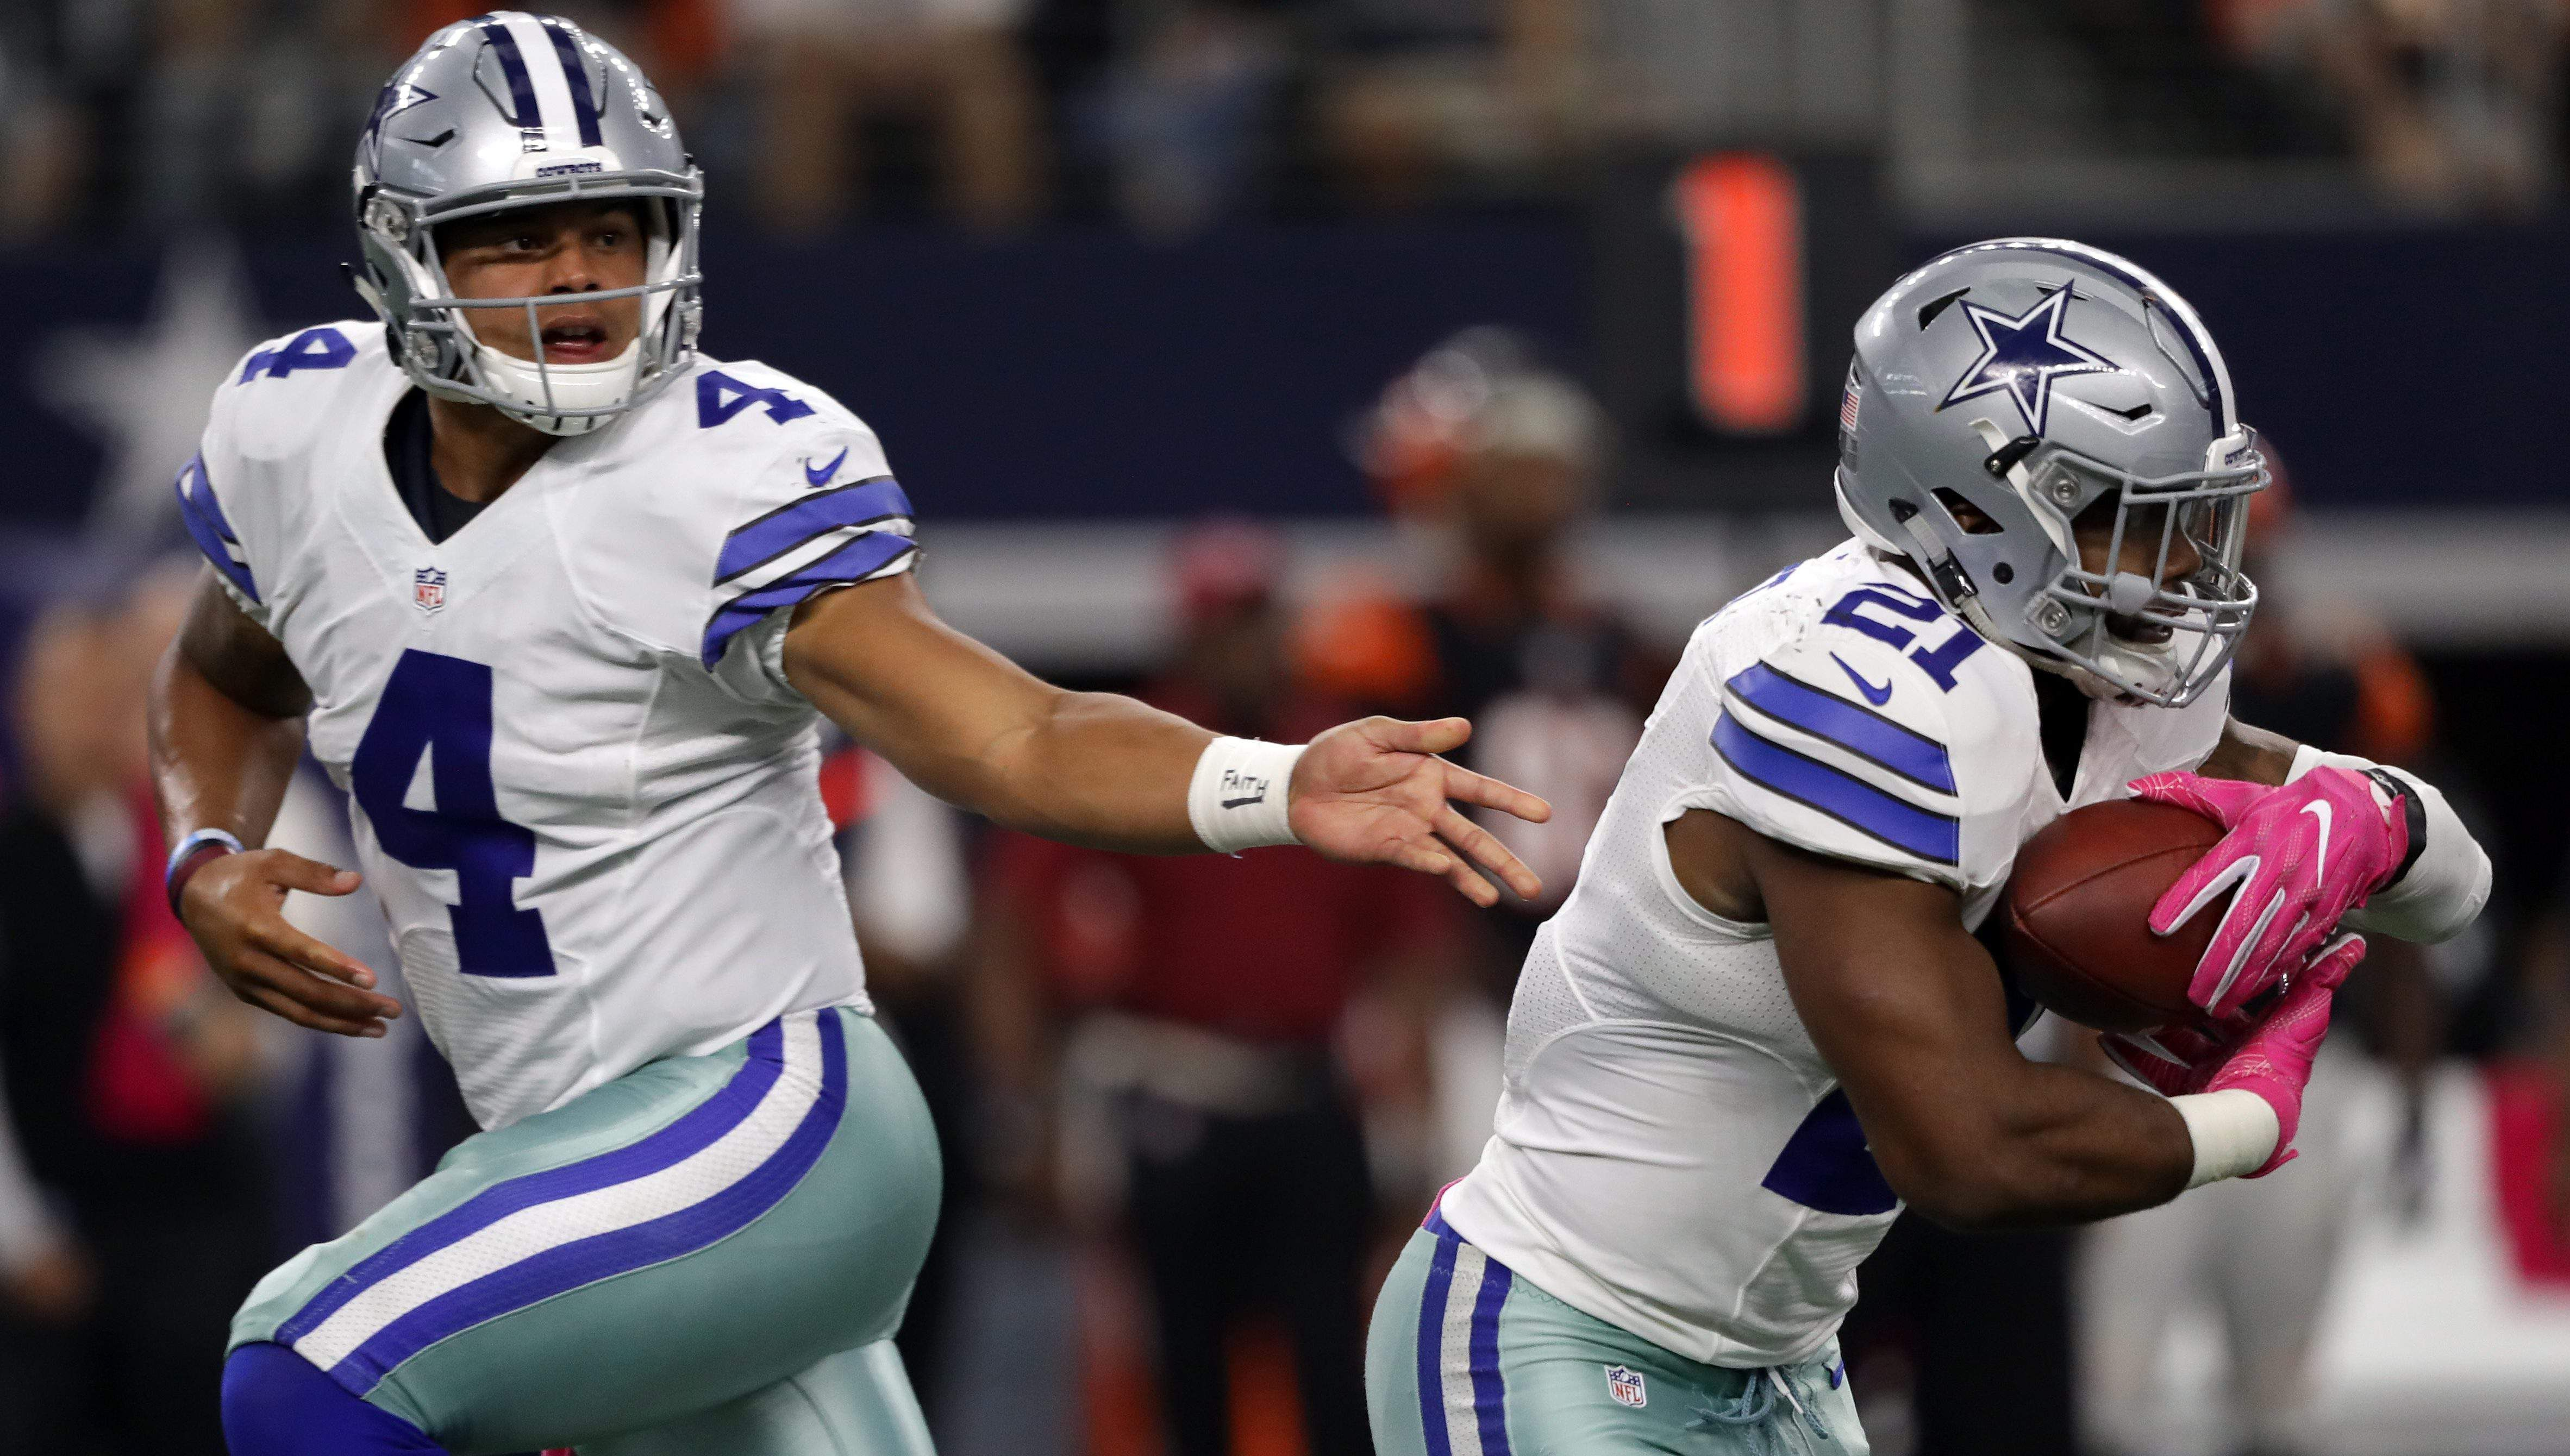 Packers vs. Cowboys Score, Stats & Highlights http